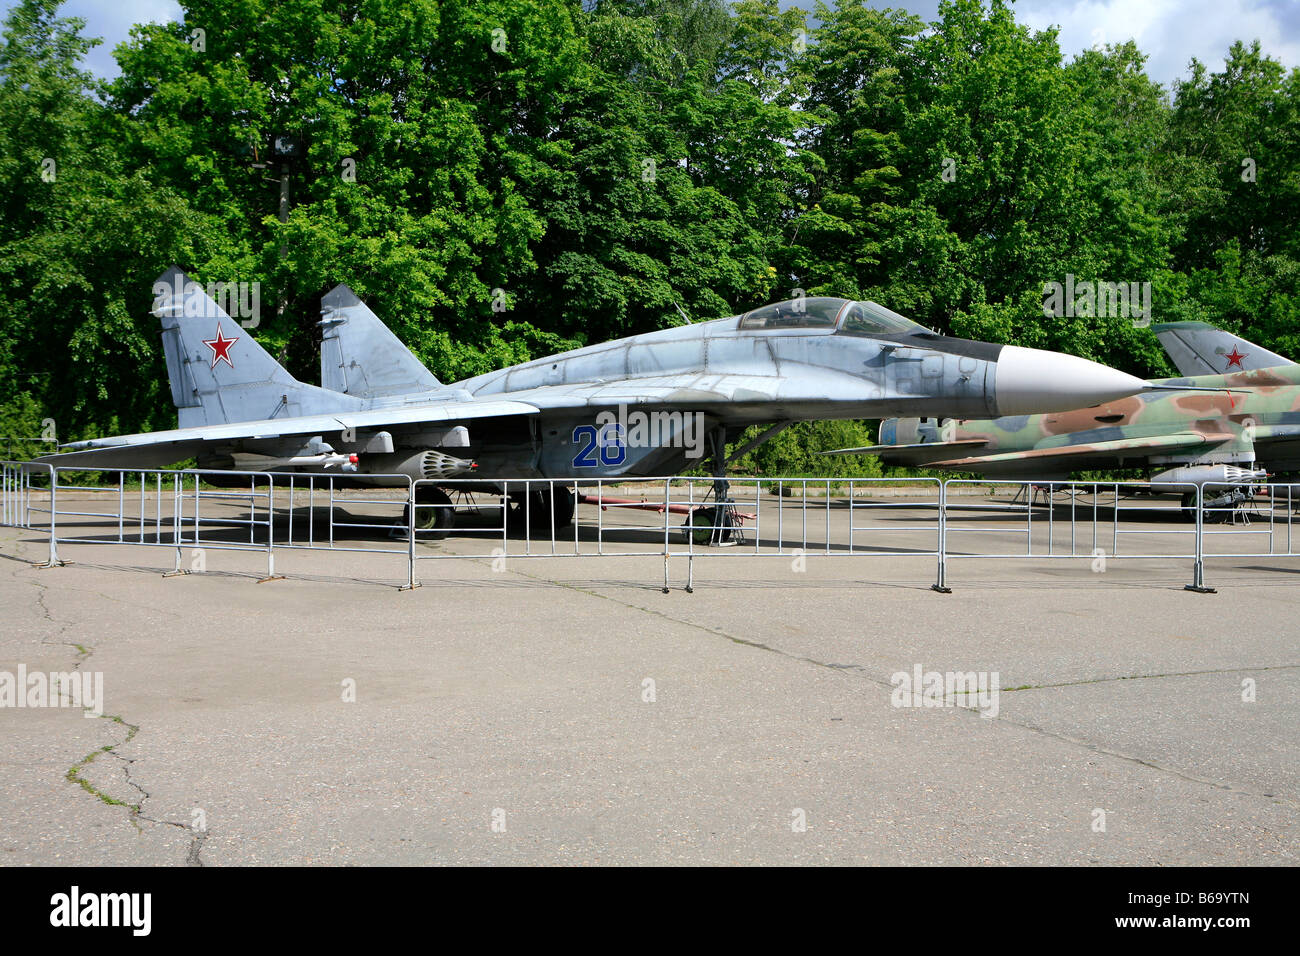 The Sukhoi Su-30 (Flanker-C) at Victory Park in Moscow, Russia - Stock Image